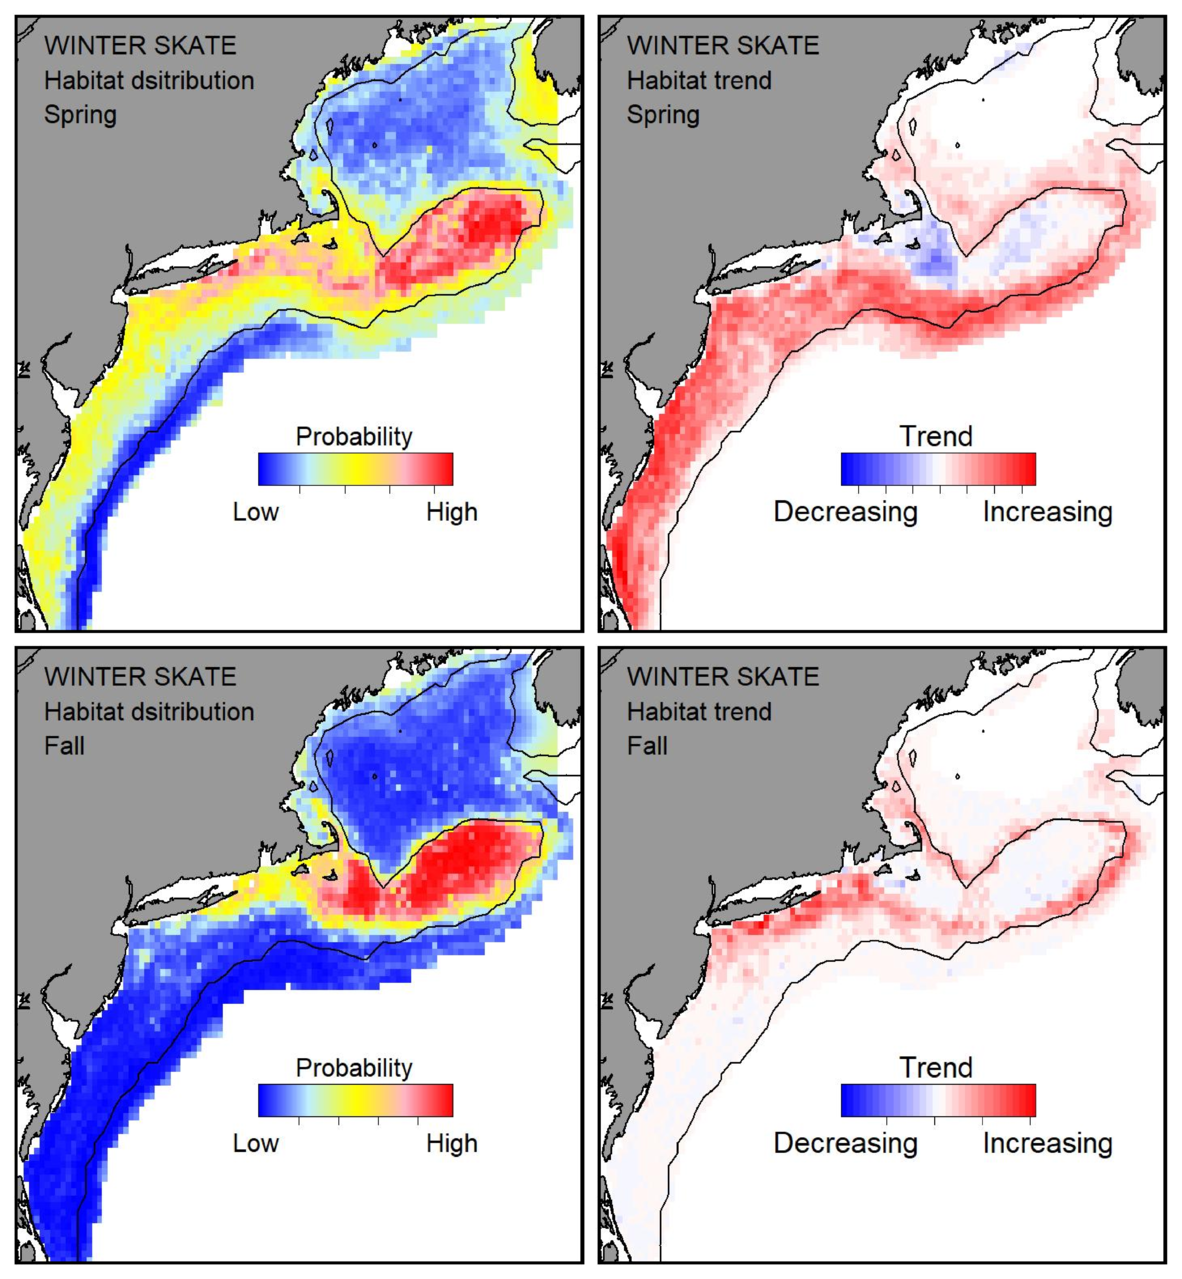 Top row: Probable habitat distribution for winter skate showing the highest concentration and increasing trend in the Gulf of Maine during the spring. Bottom row: Probable habitat distribution for winter skate showing the highest concentration and increasing trend in the Gulf of Maine during the fall.